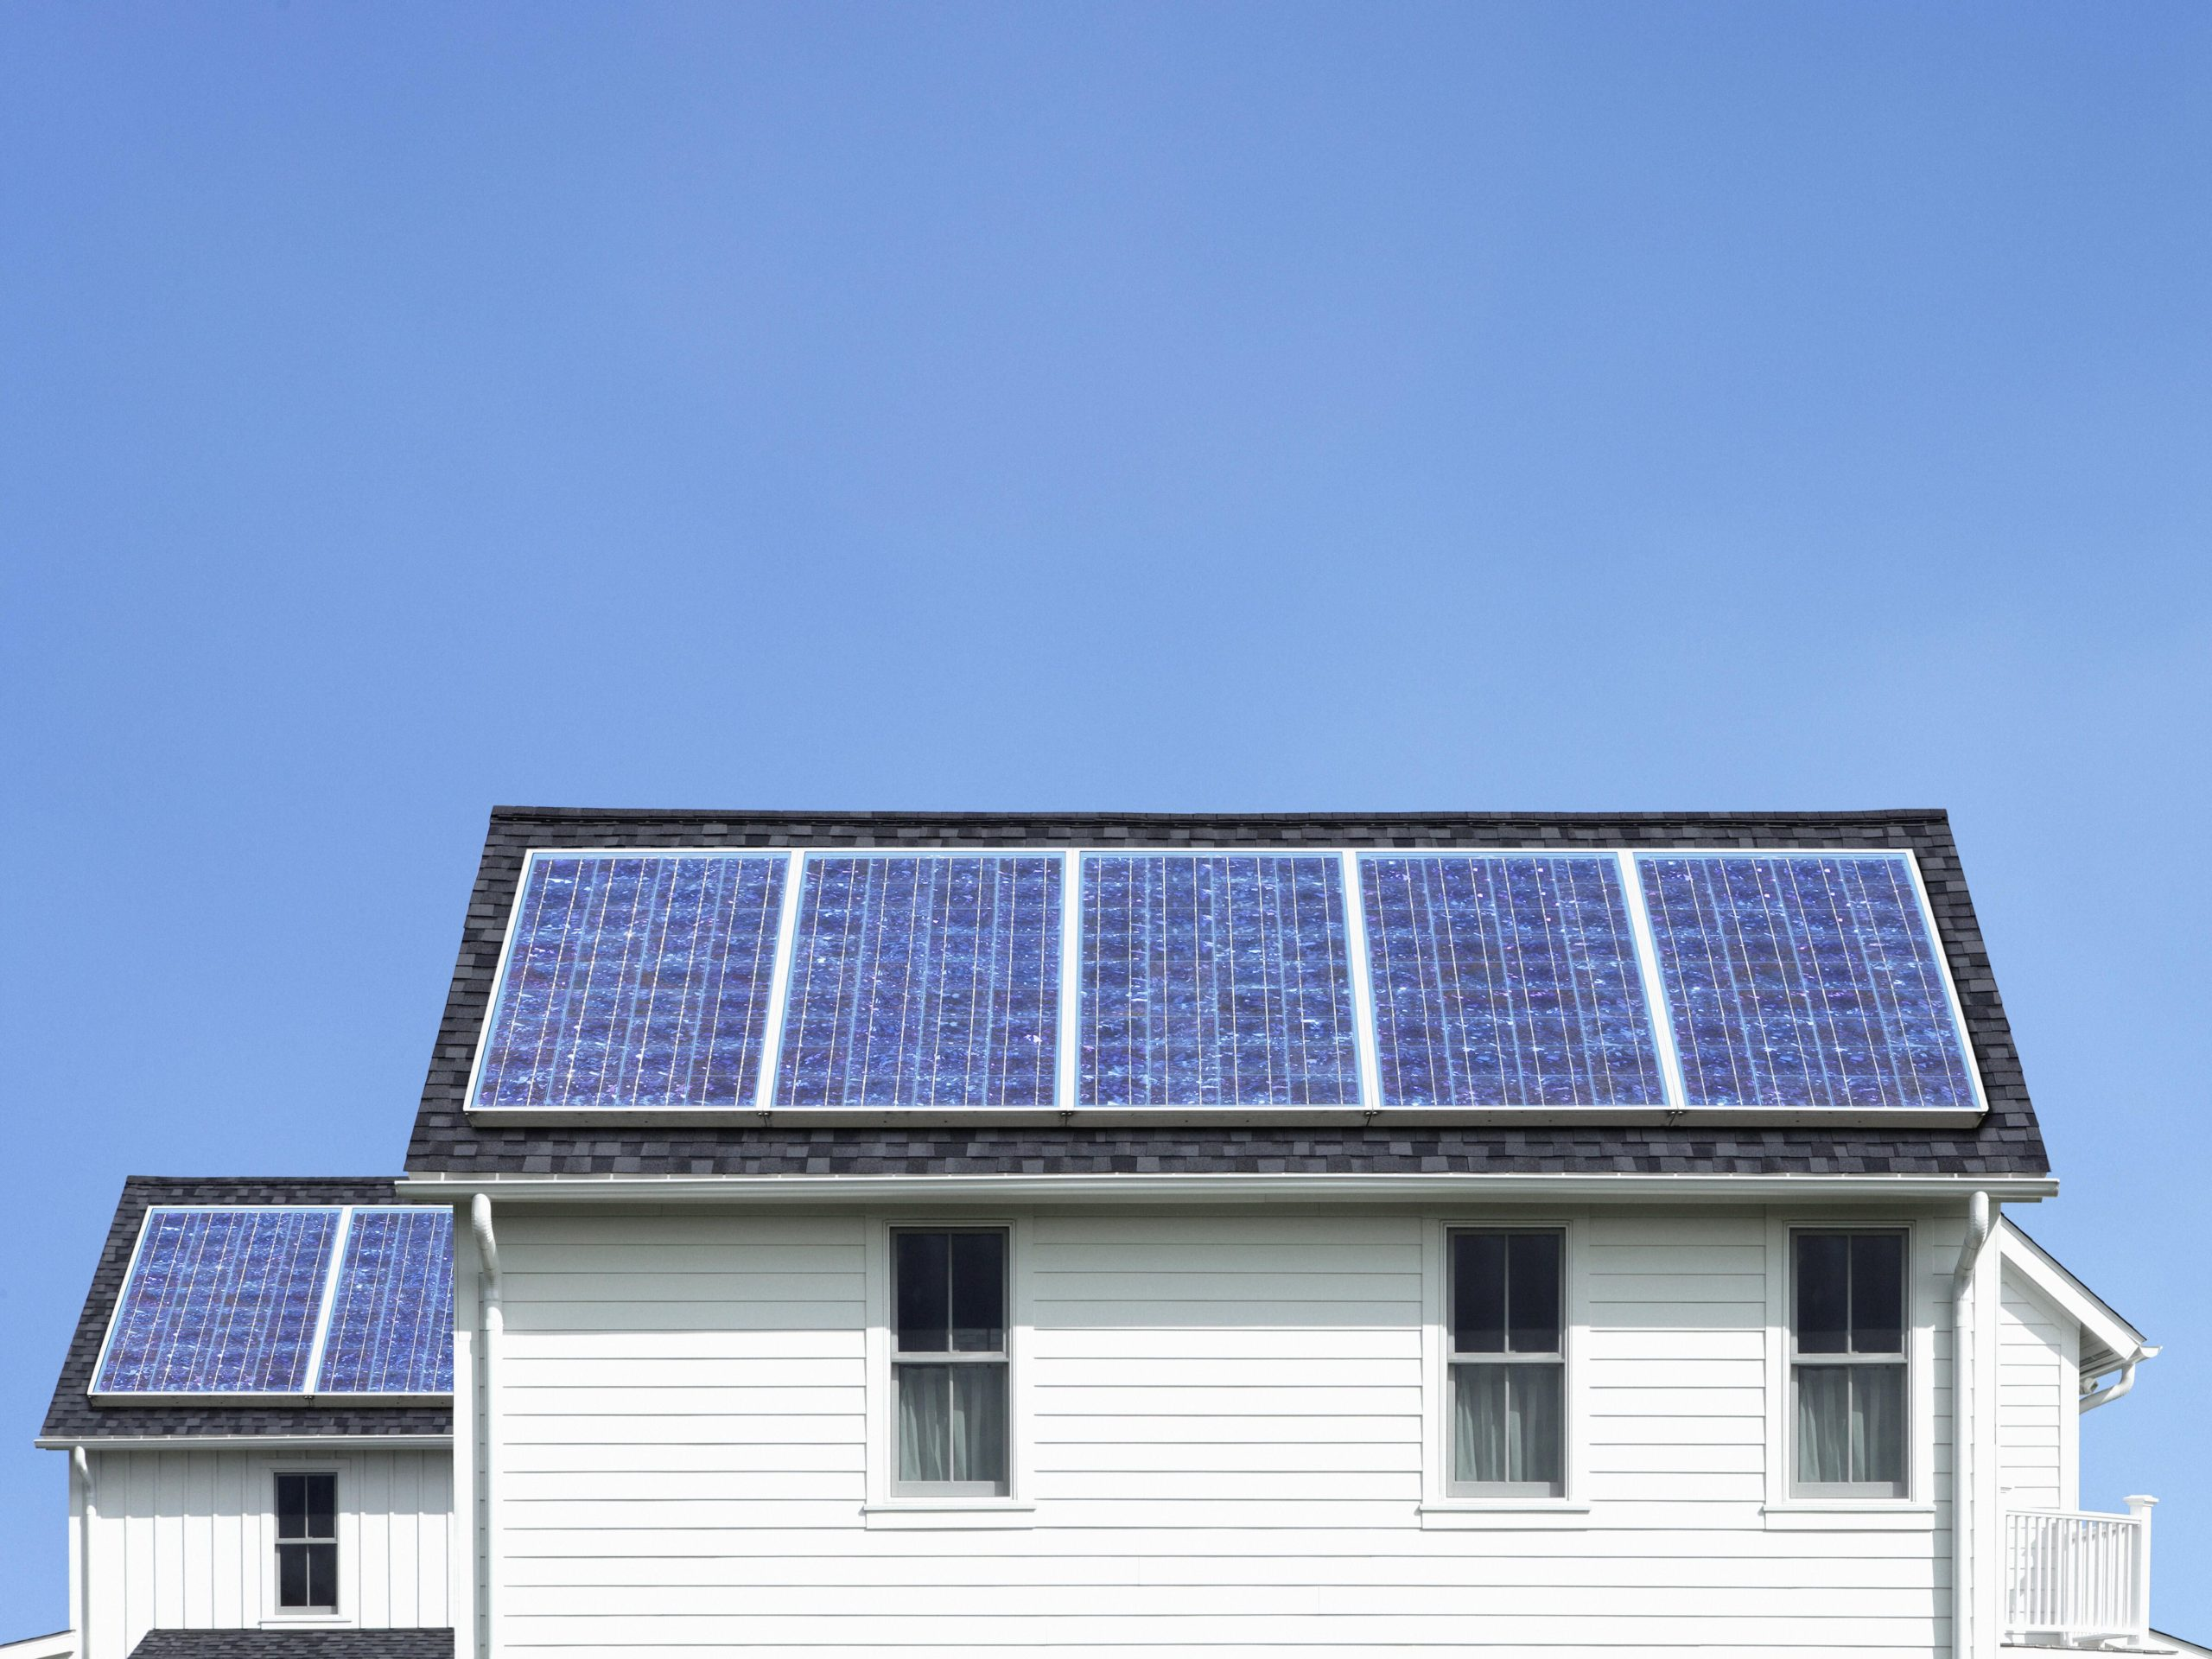 Here's how to take advantage of the solar tax credit extension in 2021